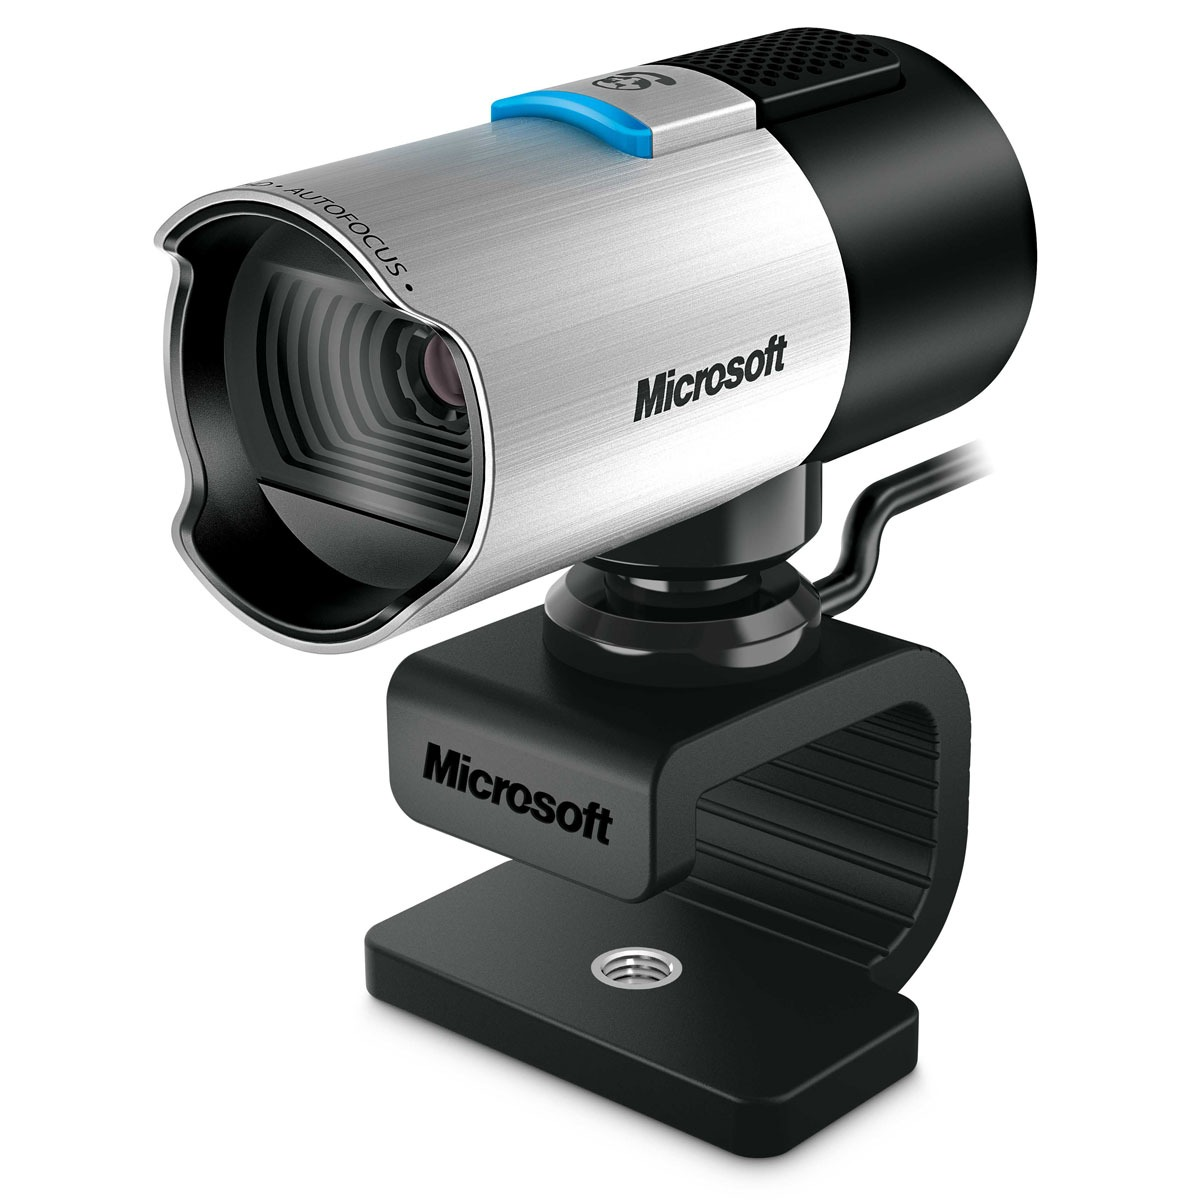 Webcam Microsoft Hardware for Business LifeCam Studio Microsoft Hardware for Business LifeCam Studio - Webcam Full HD 1080p